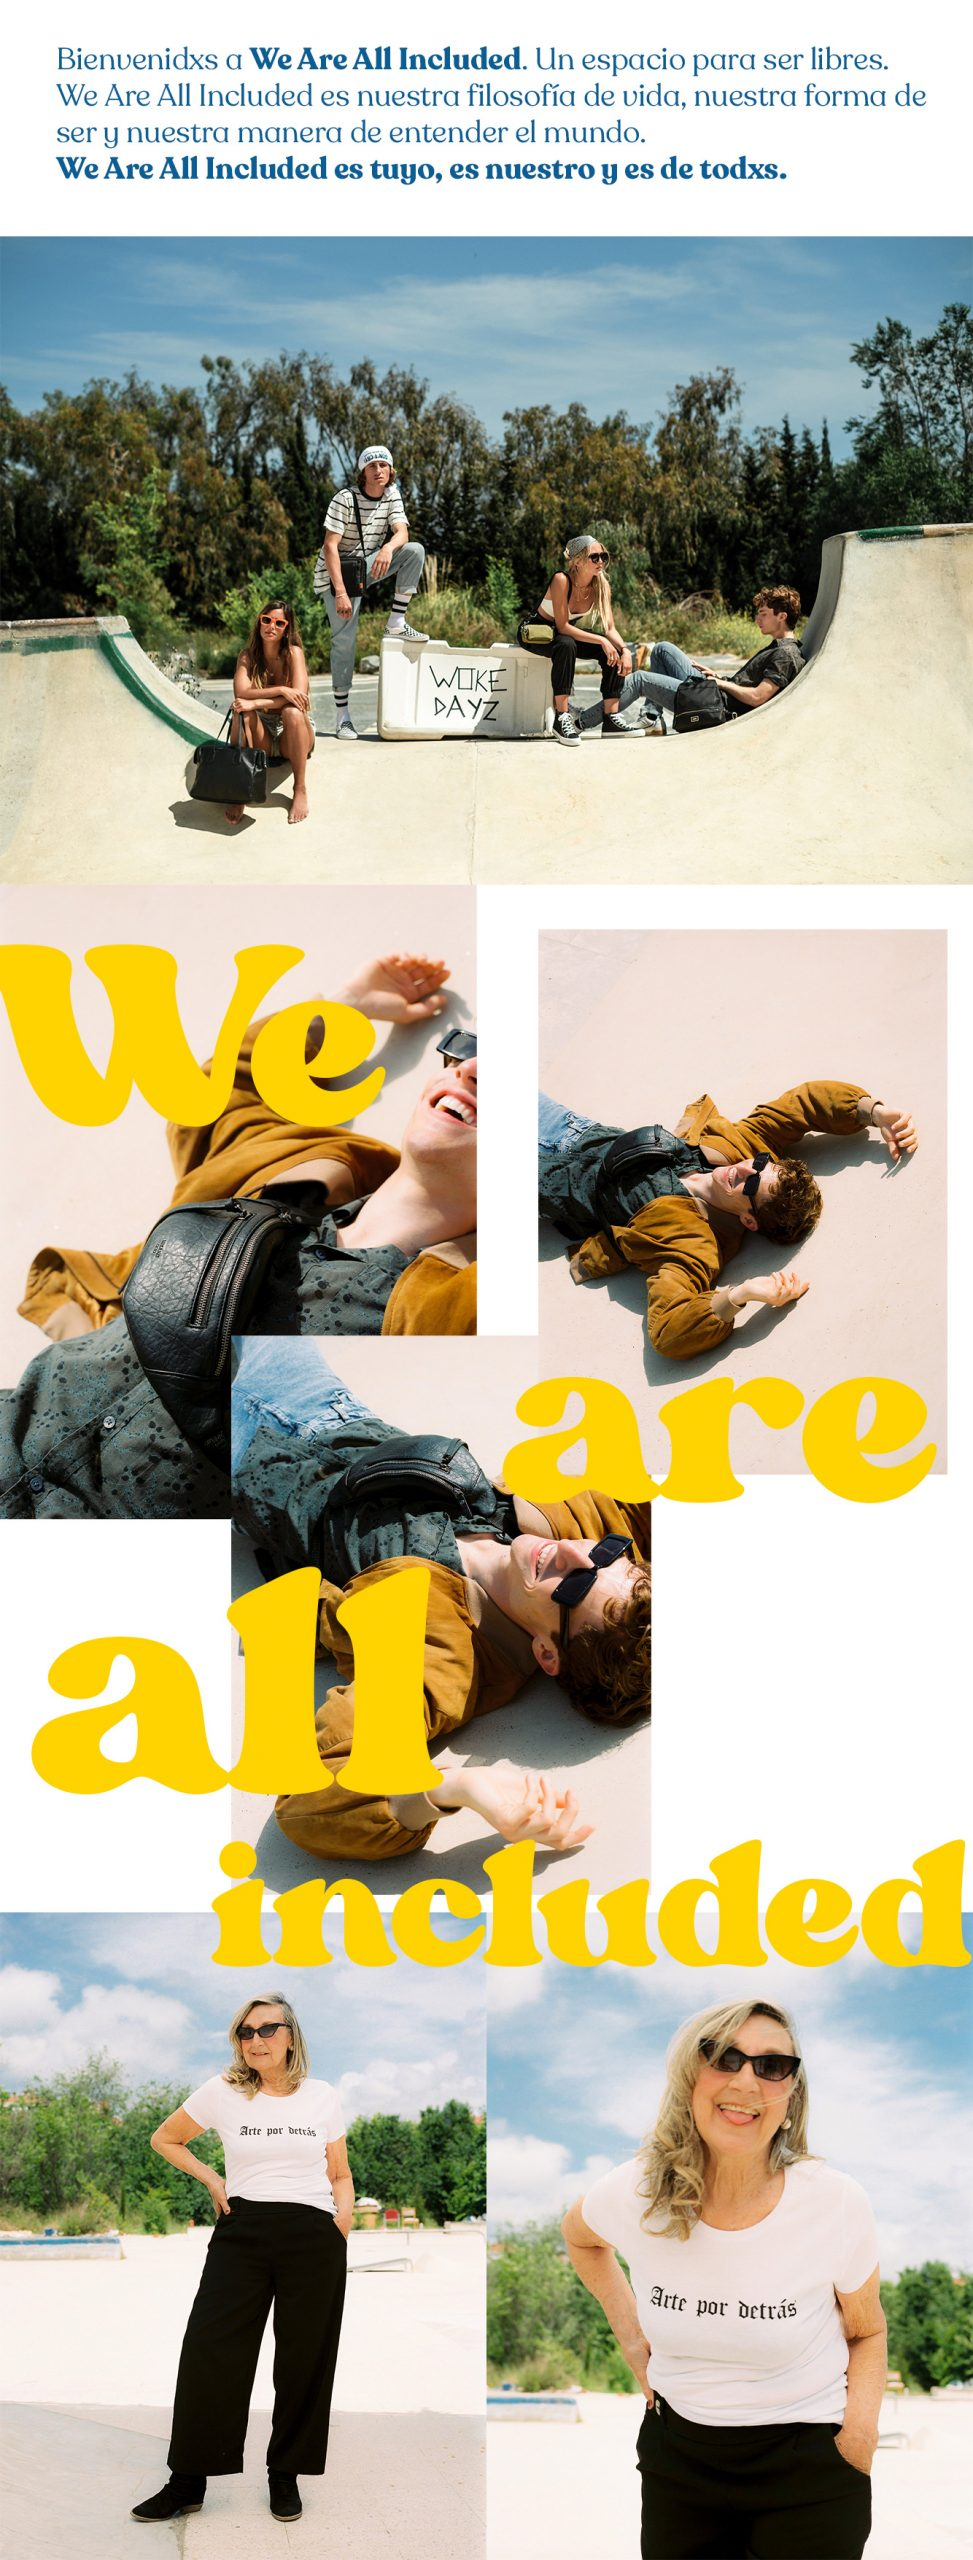 01.We are all included by Misako